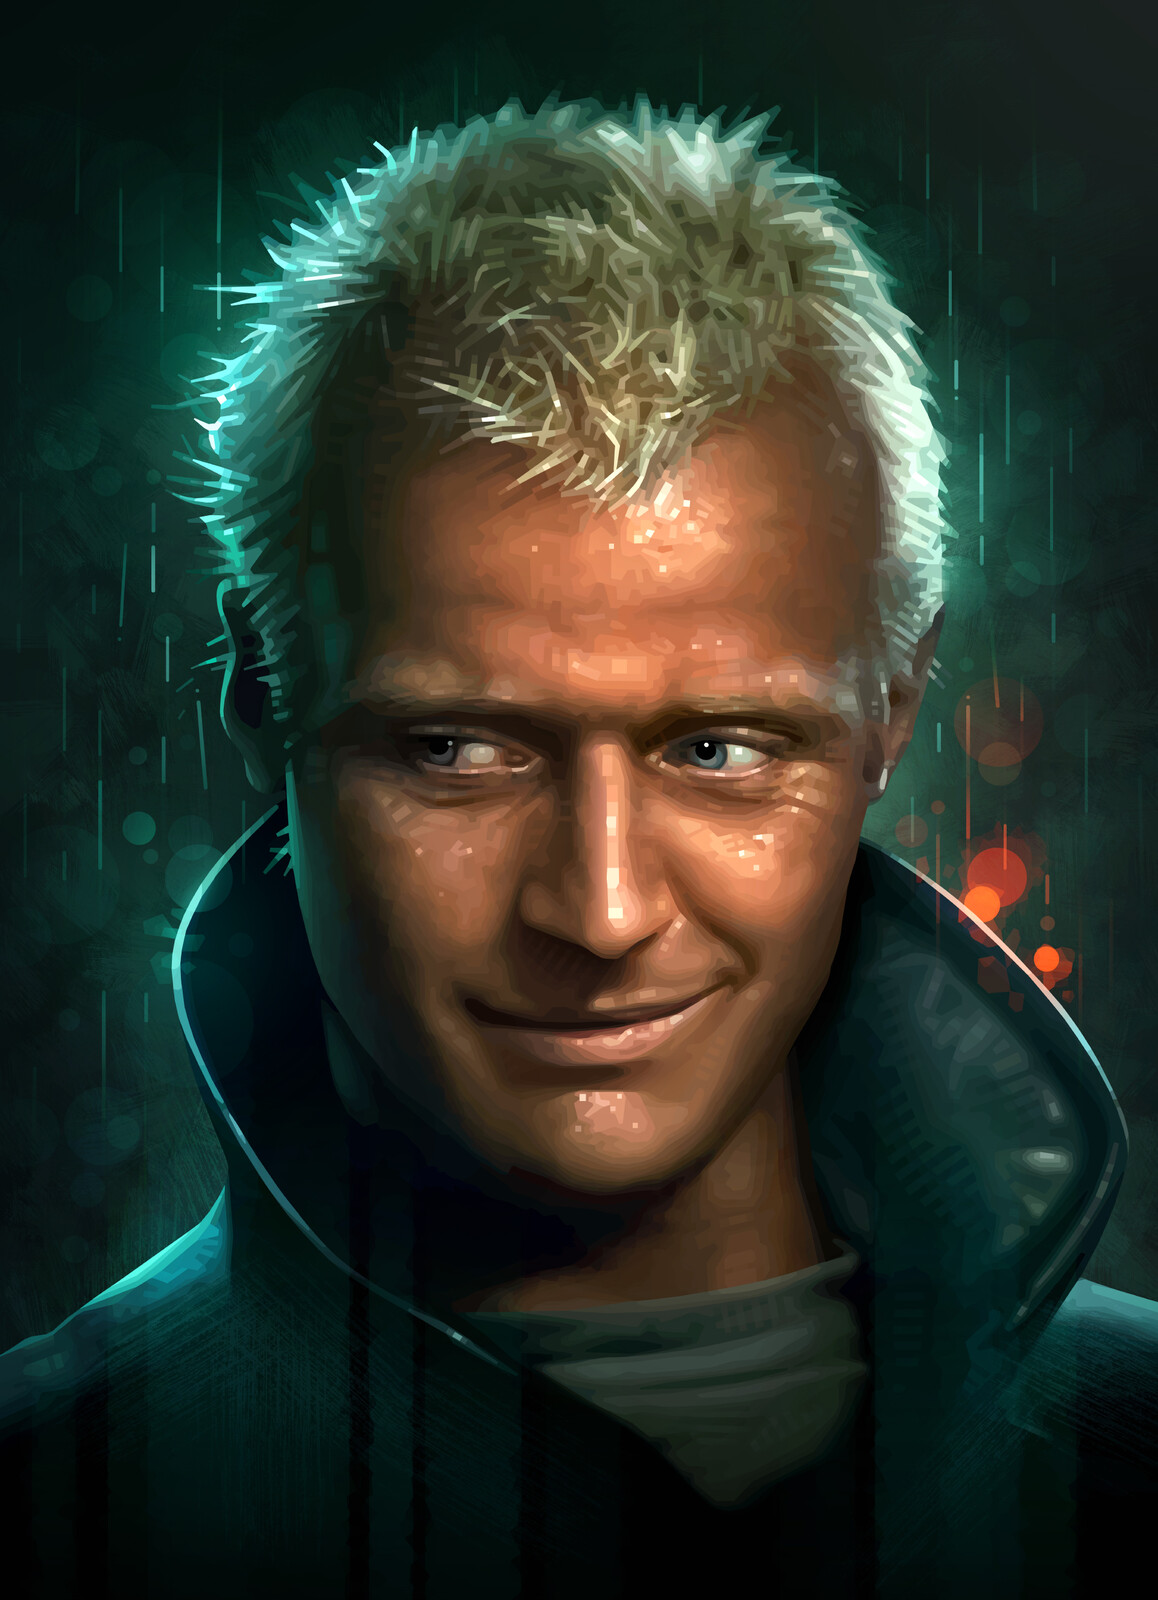 Batty Portrait (Blade Runner)